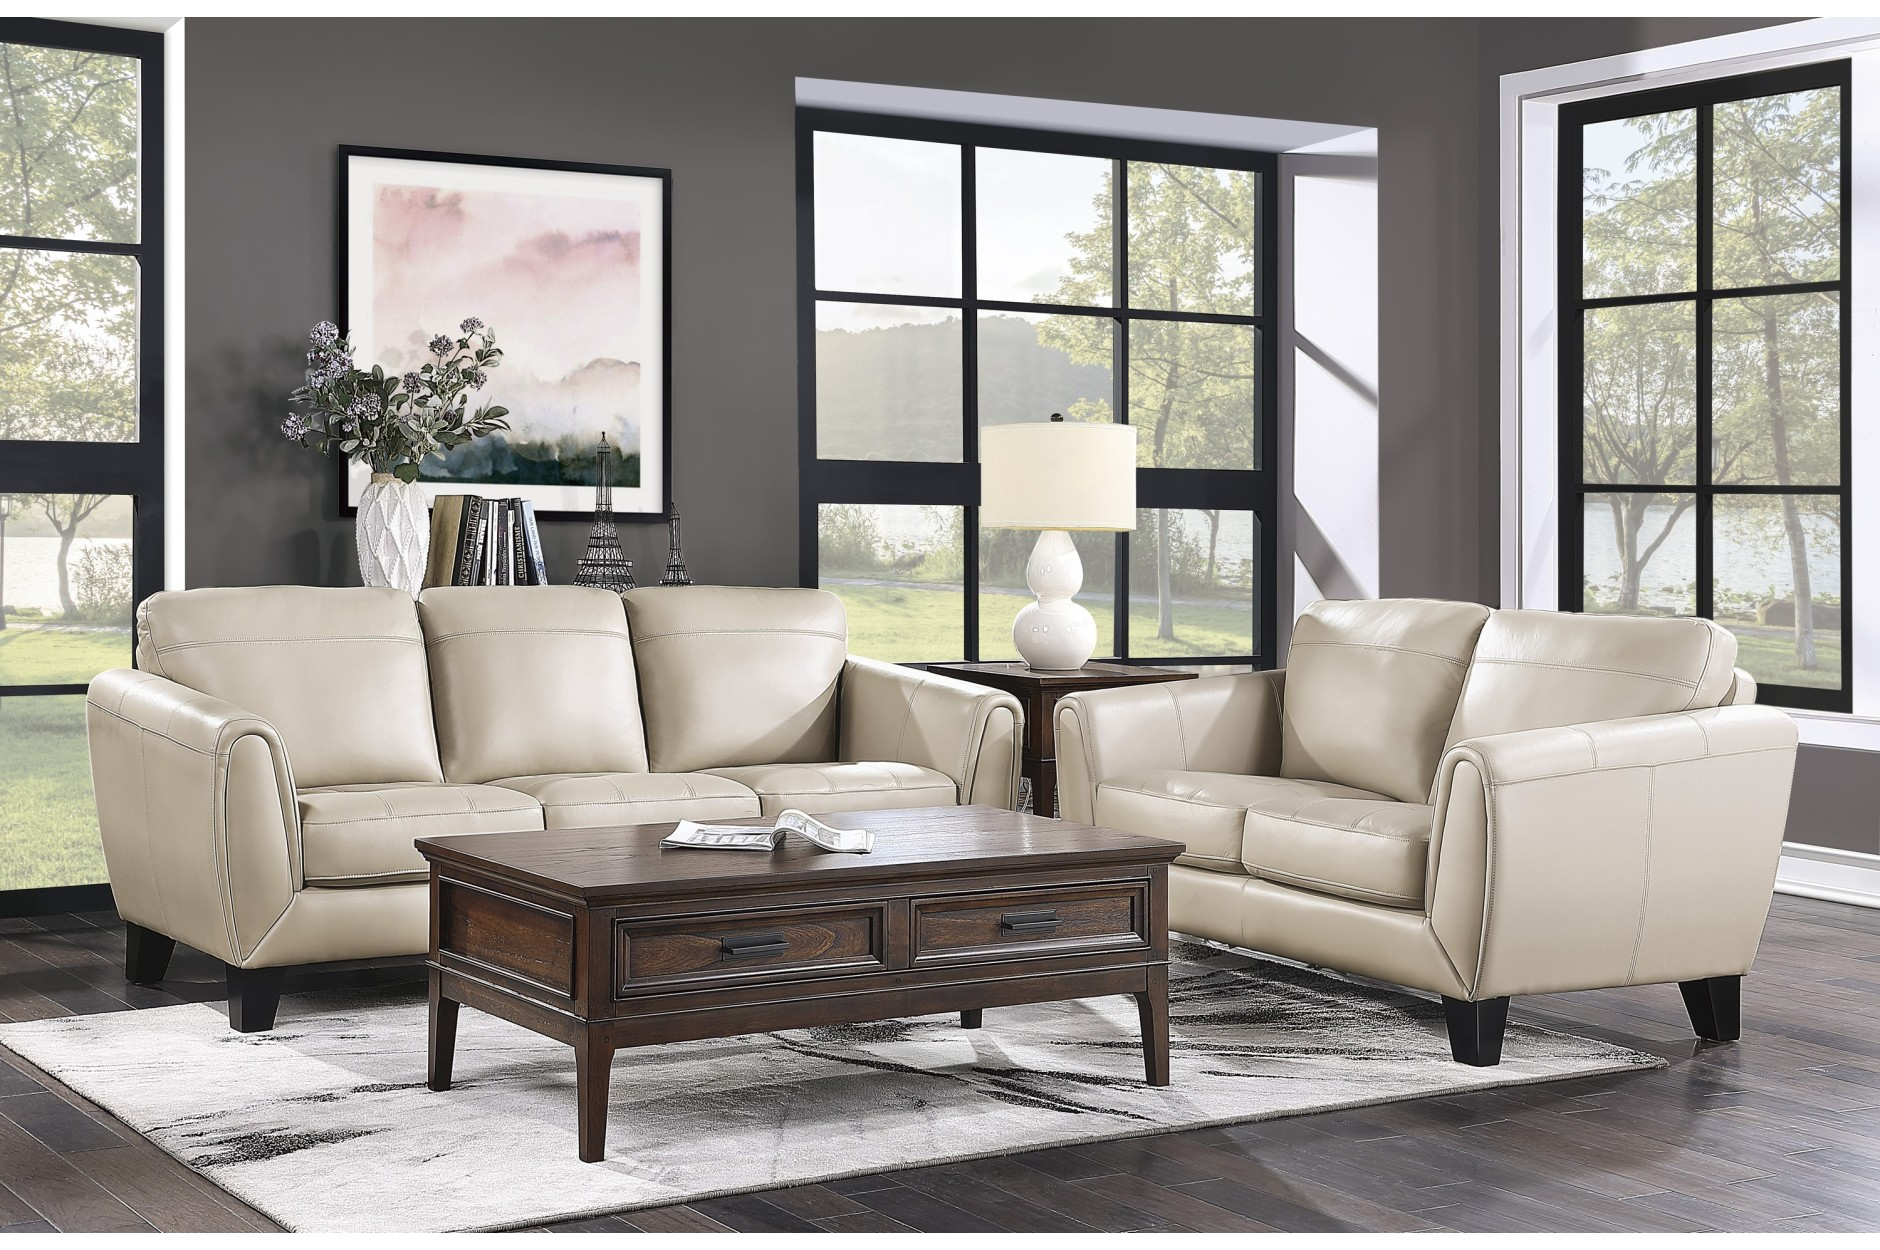 2PC leather Sofa + Loveseat